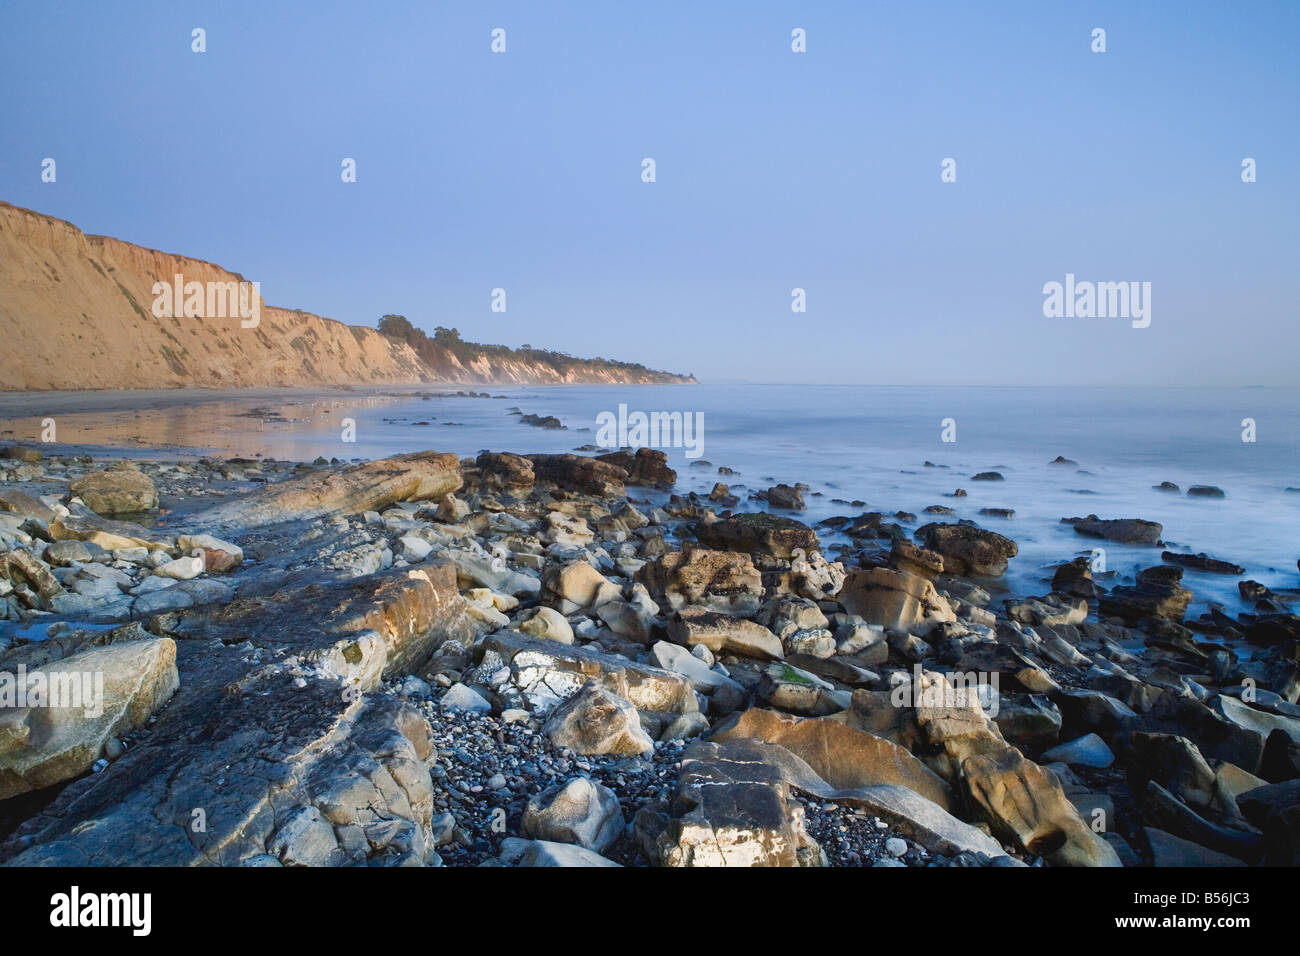 Rocky beach in Santa Barbara - Stock Image